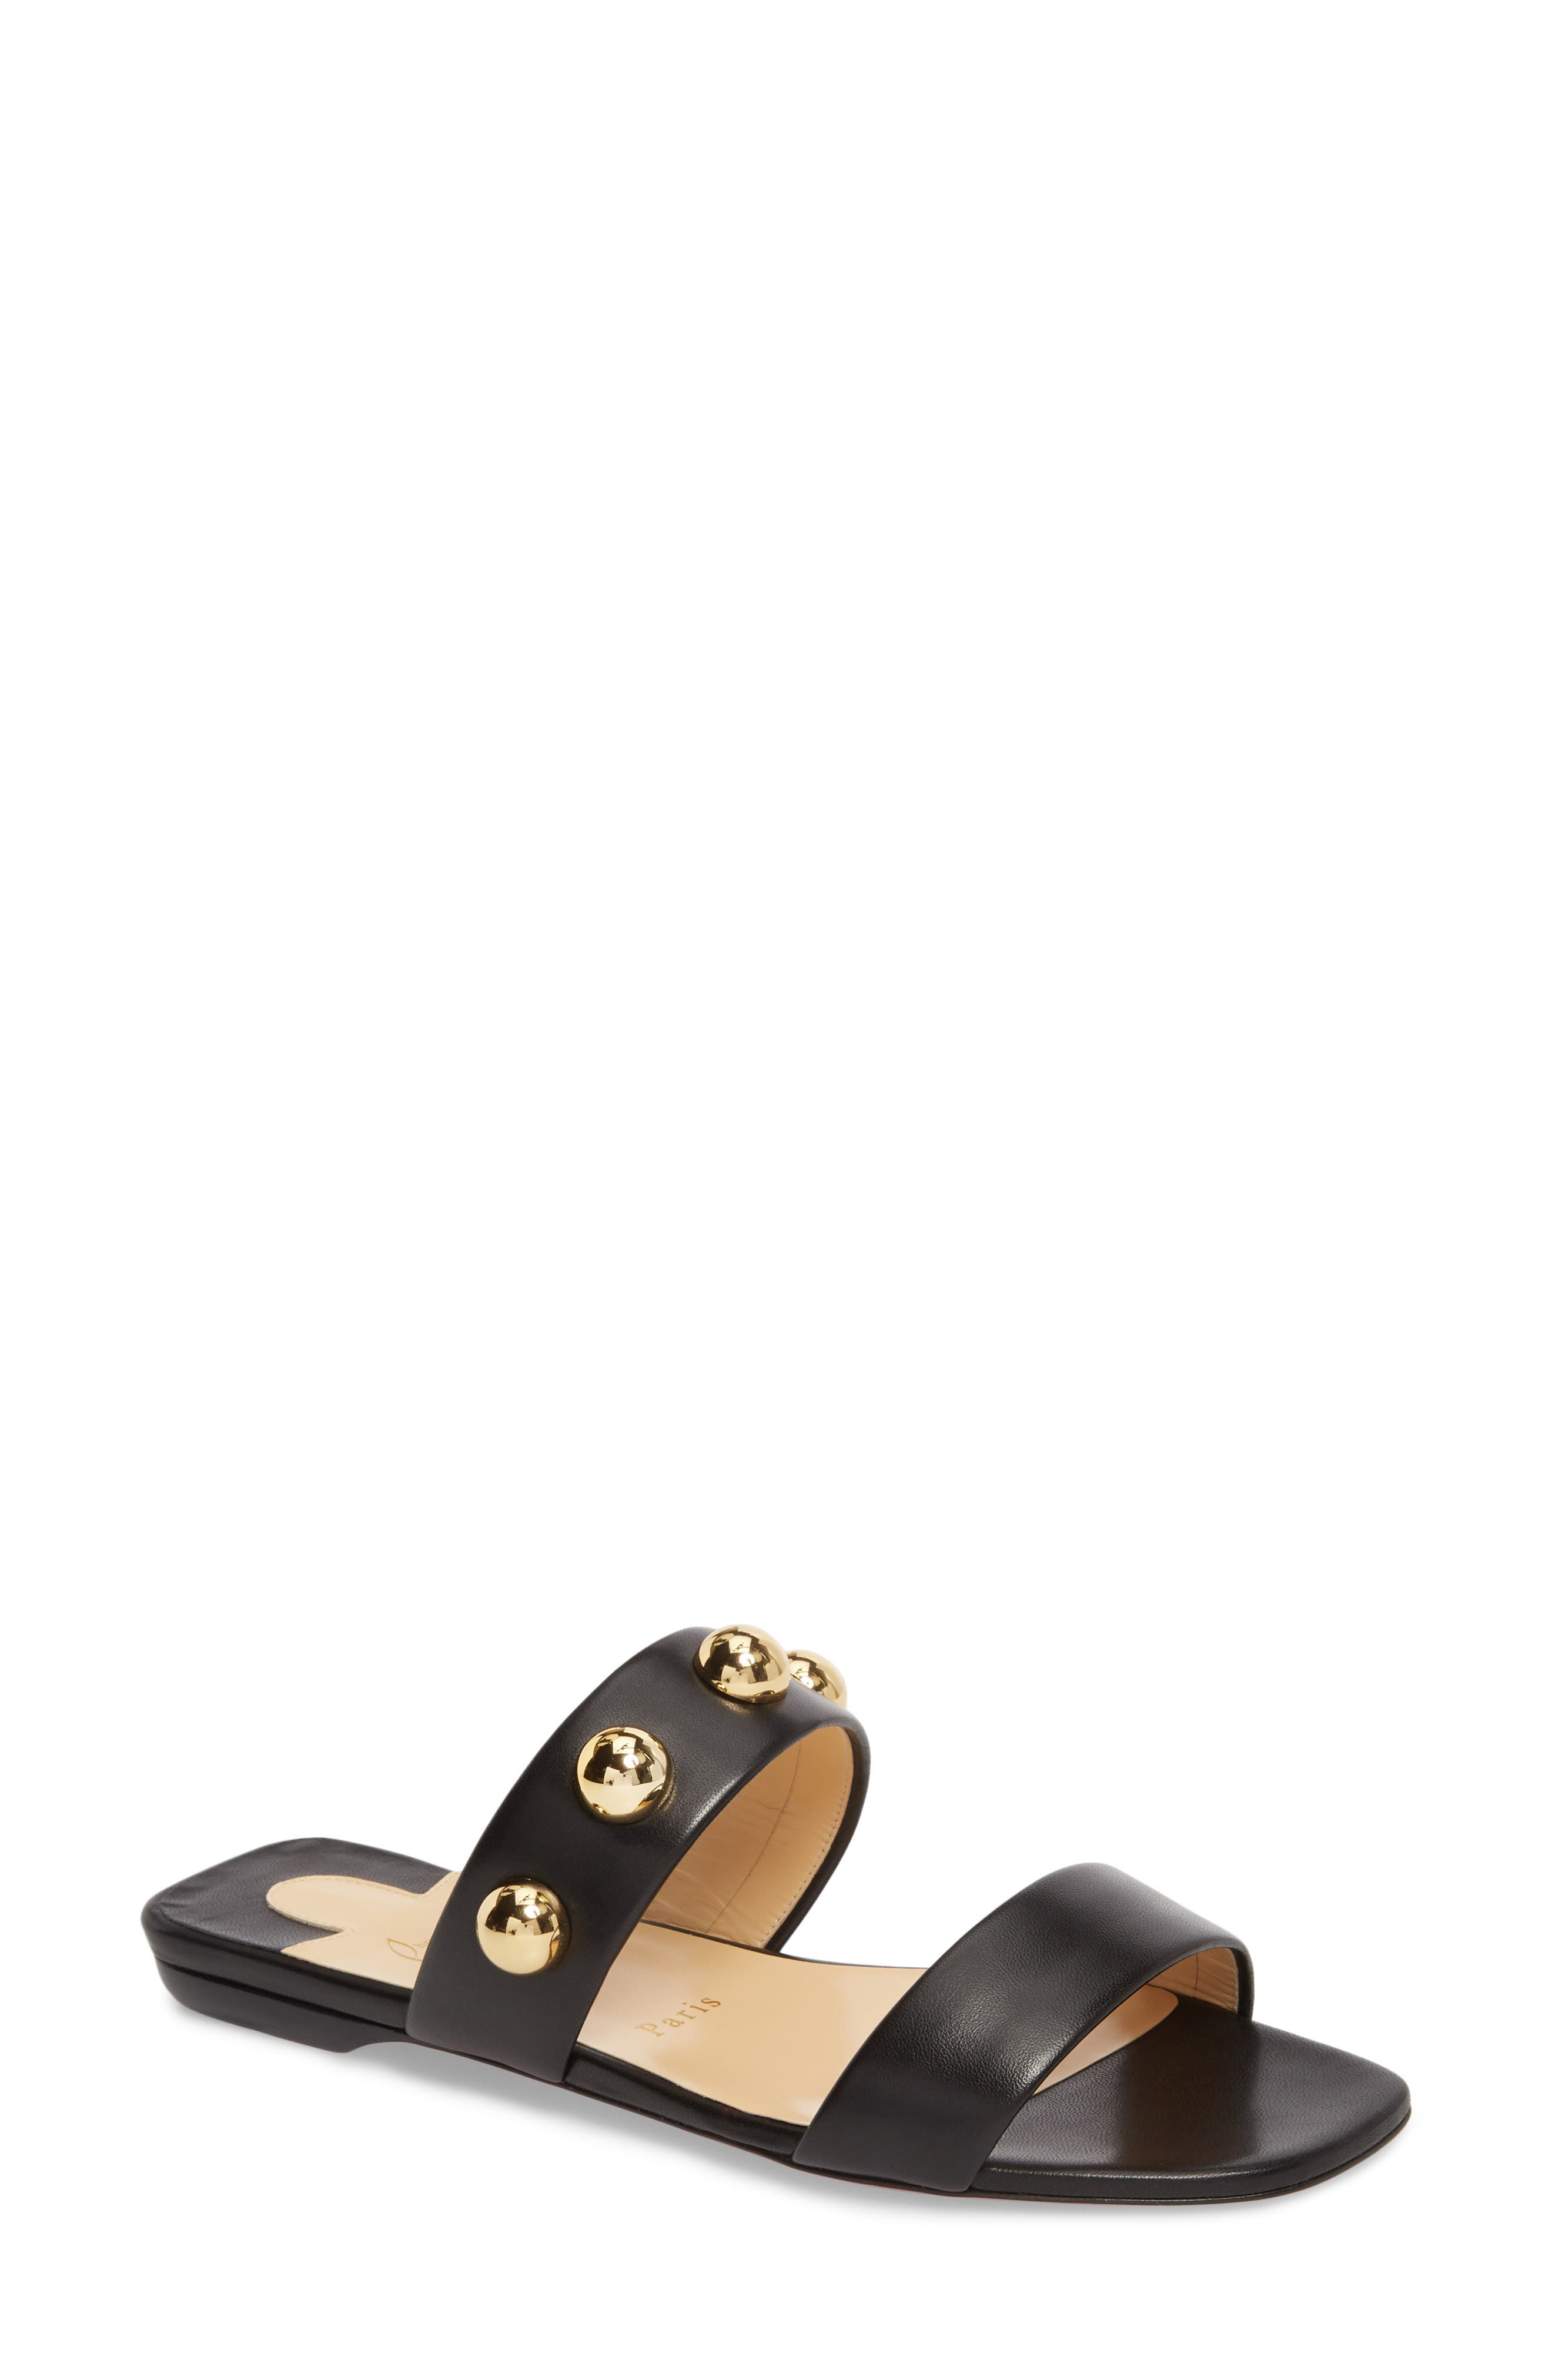 Simple Bille Ornament Slide Sandal,                         Main,                         color, BLACK/ GOLD